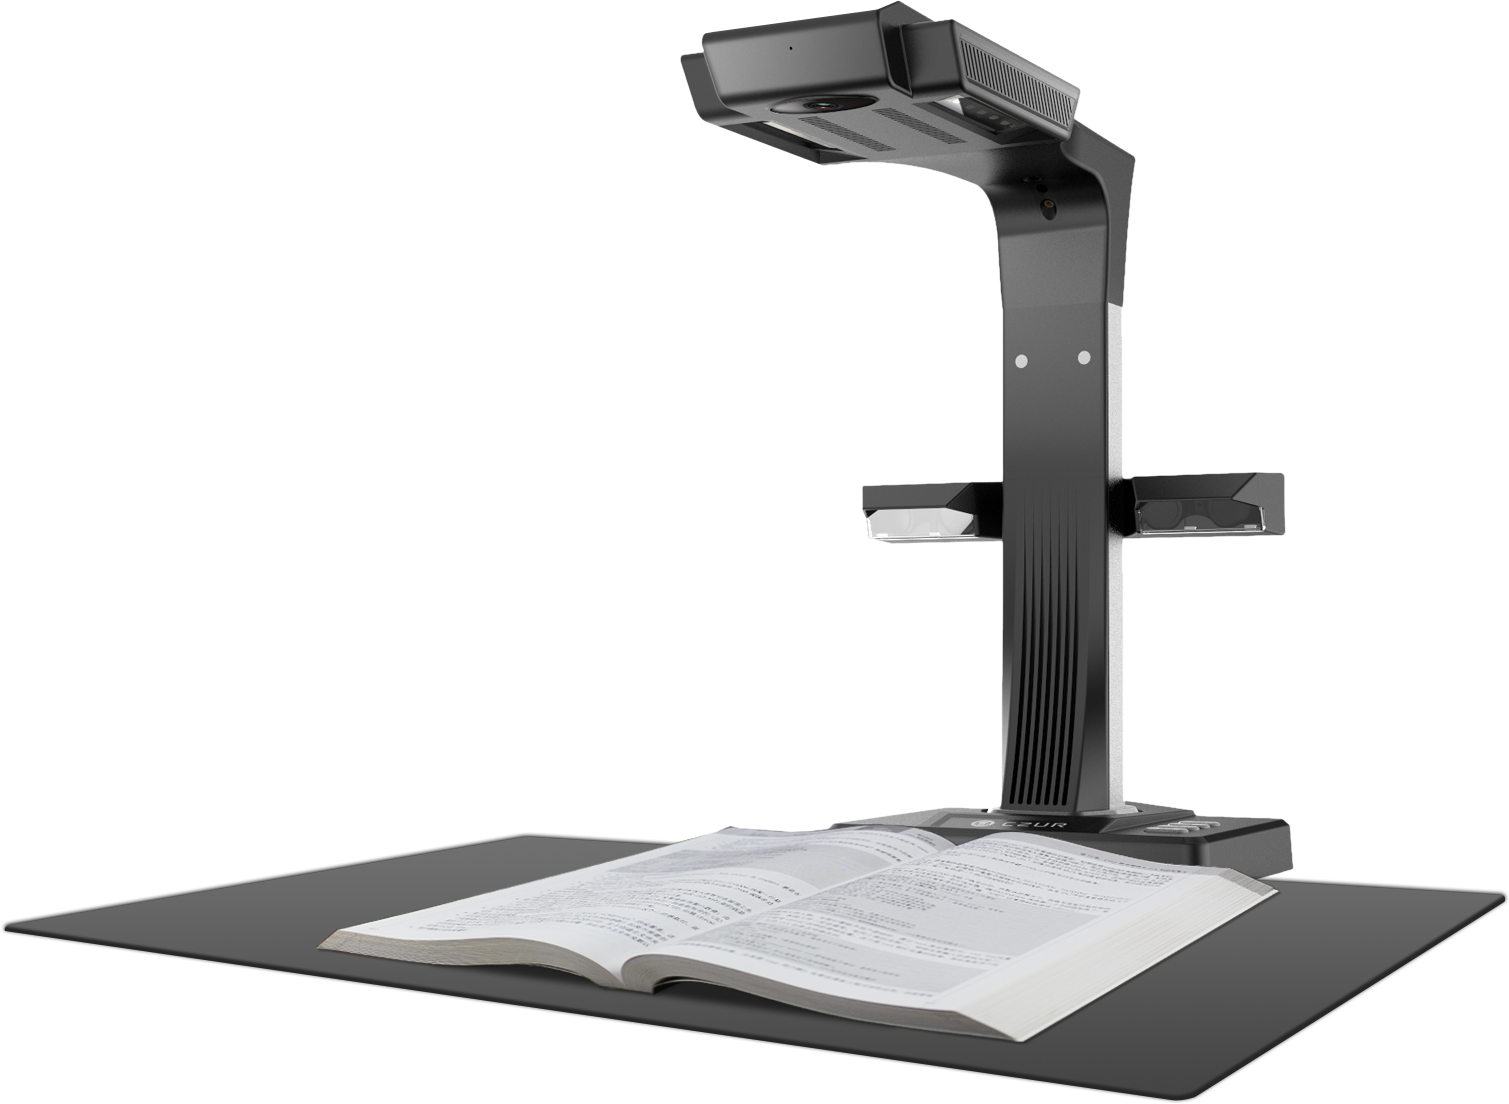 CZUR ET16/ET16 Plus Smart Book Scanner